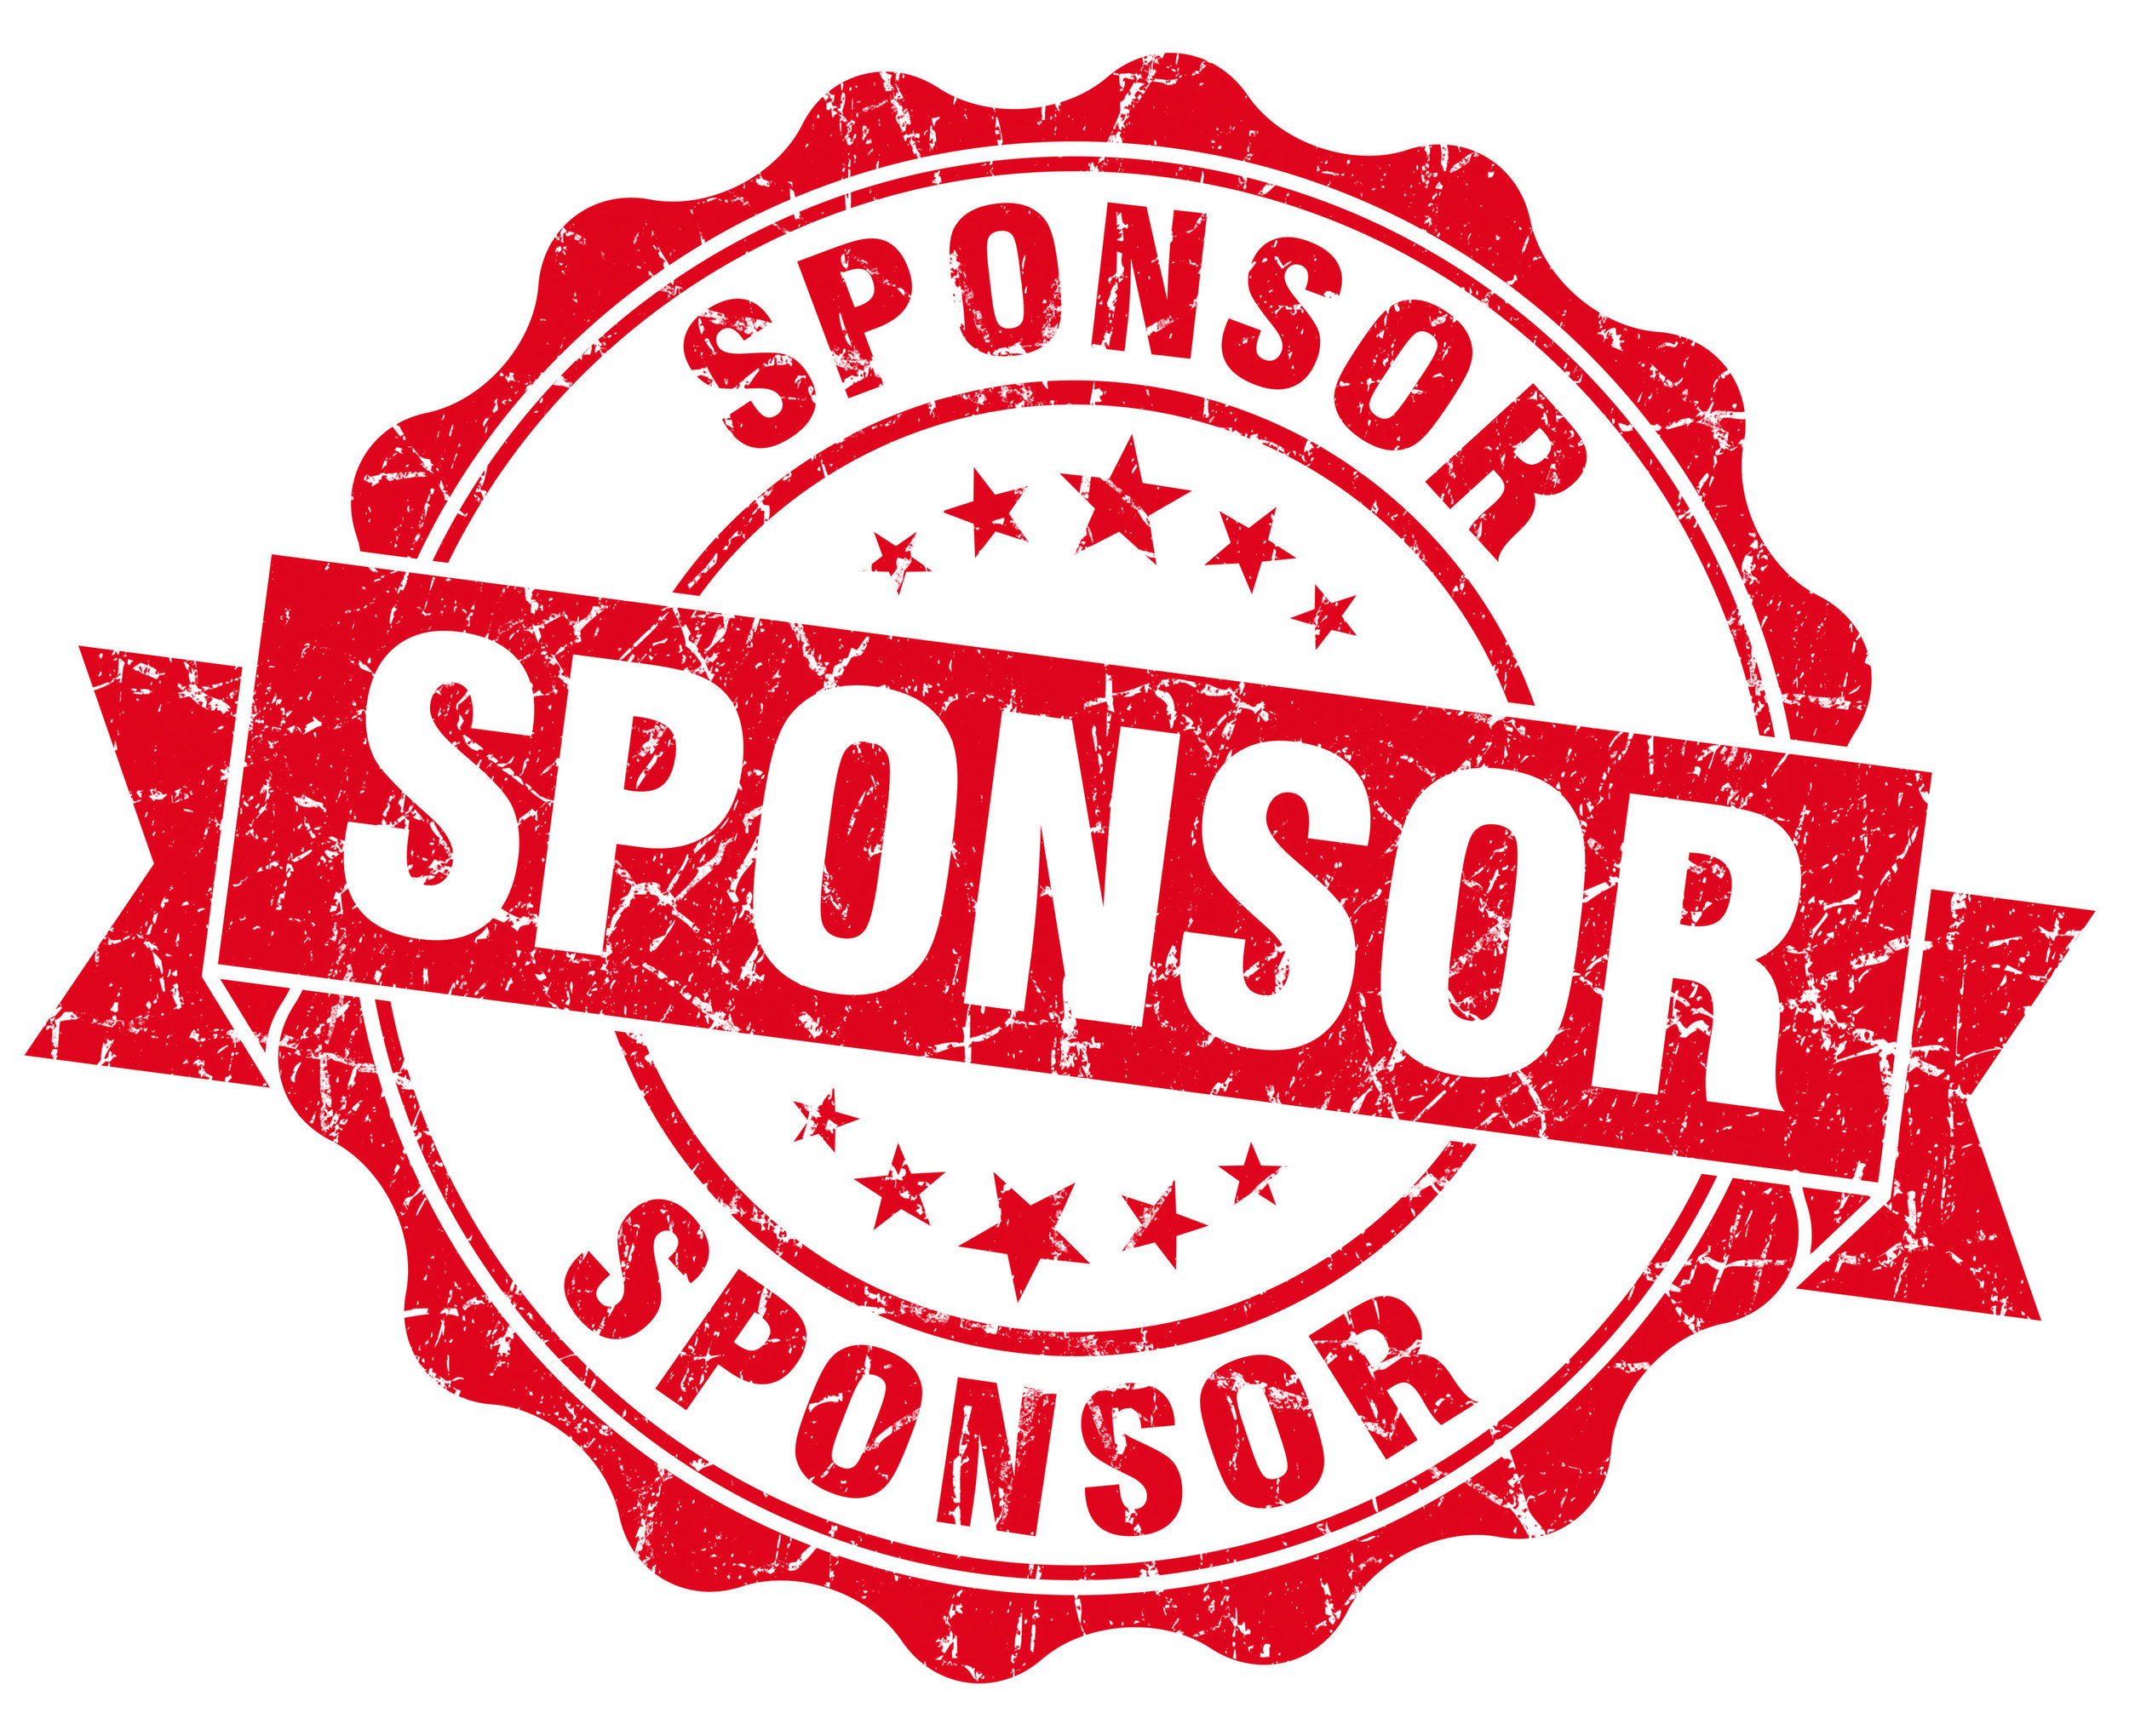 SPONSOR THE red Curb theatre! - Support the Red Curb Theatre and promote your thing to our audiences! We'll be adding a variety of ways to become a sponsorship partner in the future, but to start you can do this:FULL TABLE TOP AD: $100 per table for a 6 month placement, $175 per table for one entire year.We have 30 16